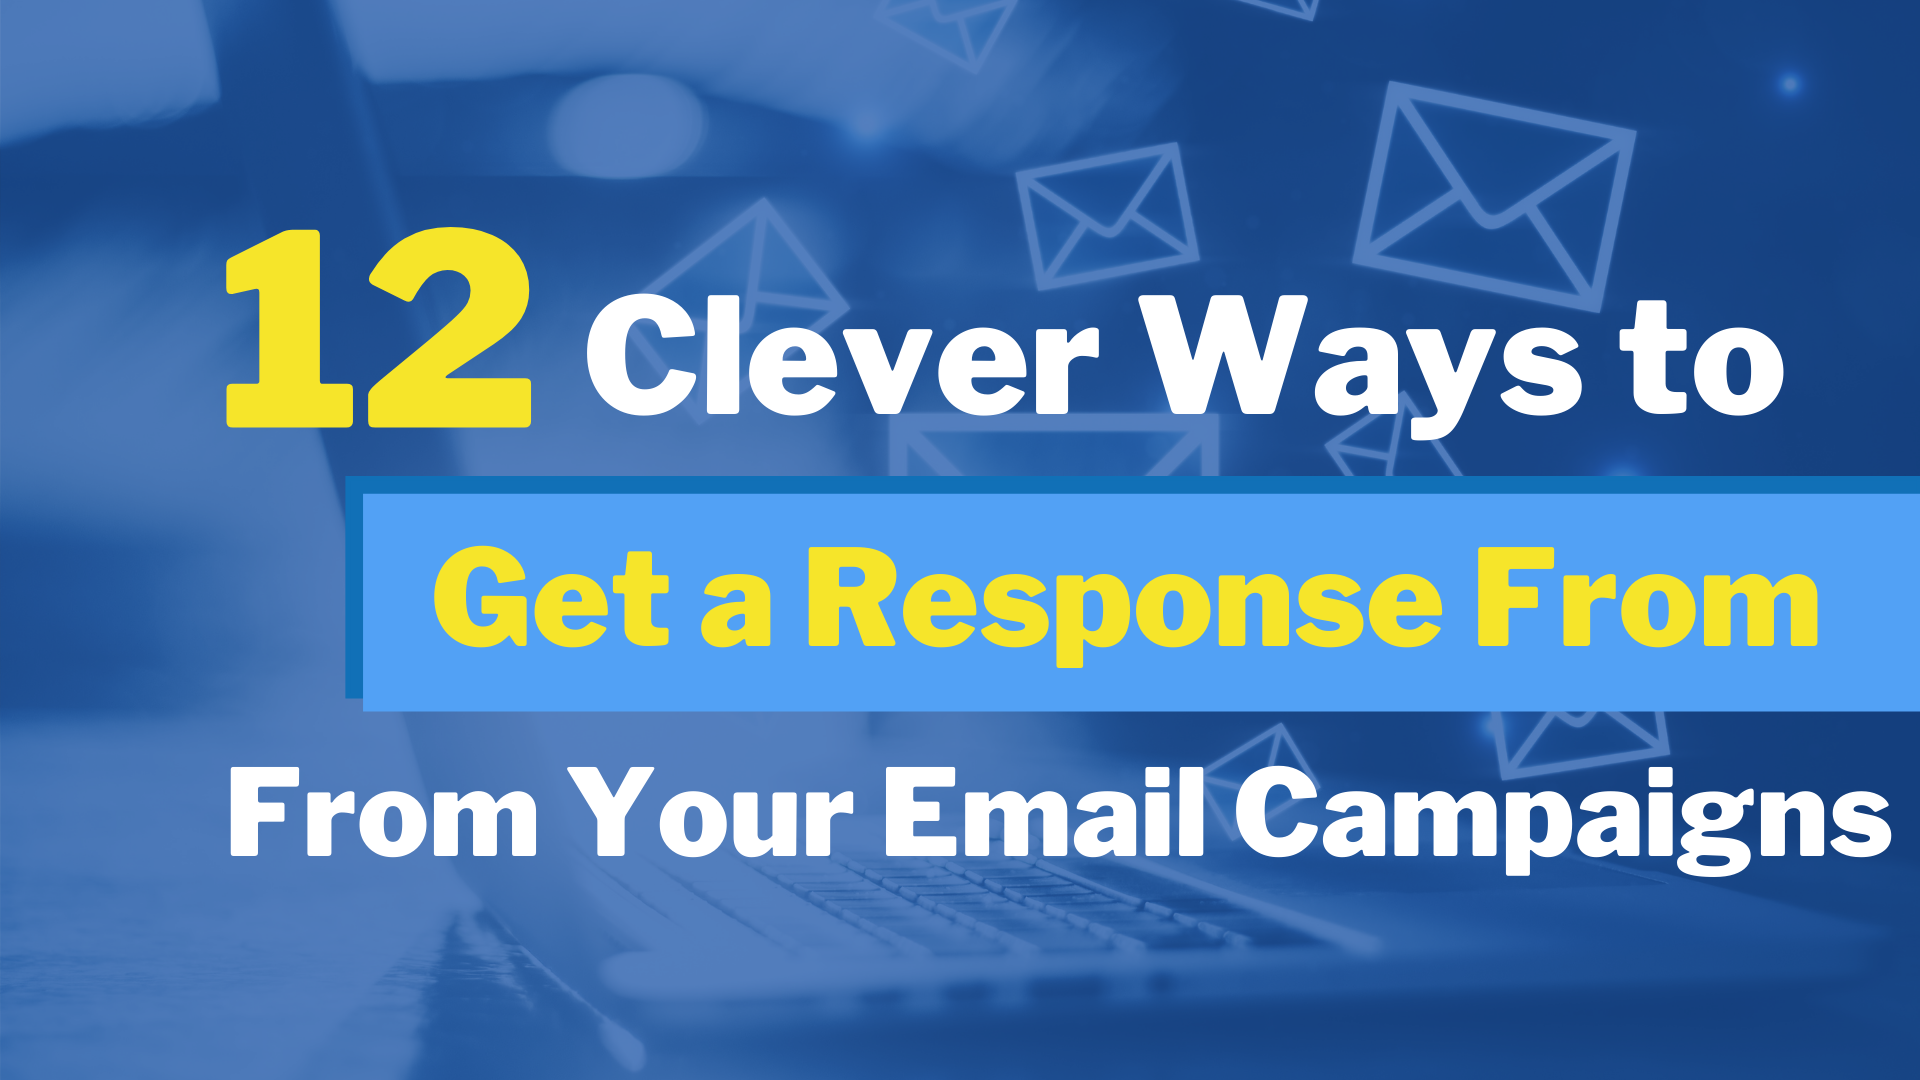 Email Marketing Tips – 12 Clever Ways To Get a Response From Your Email Campaigns